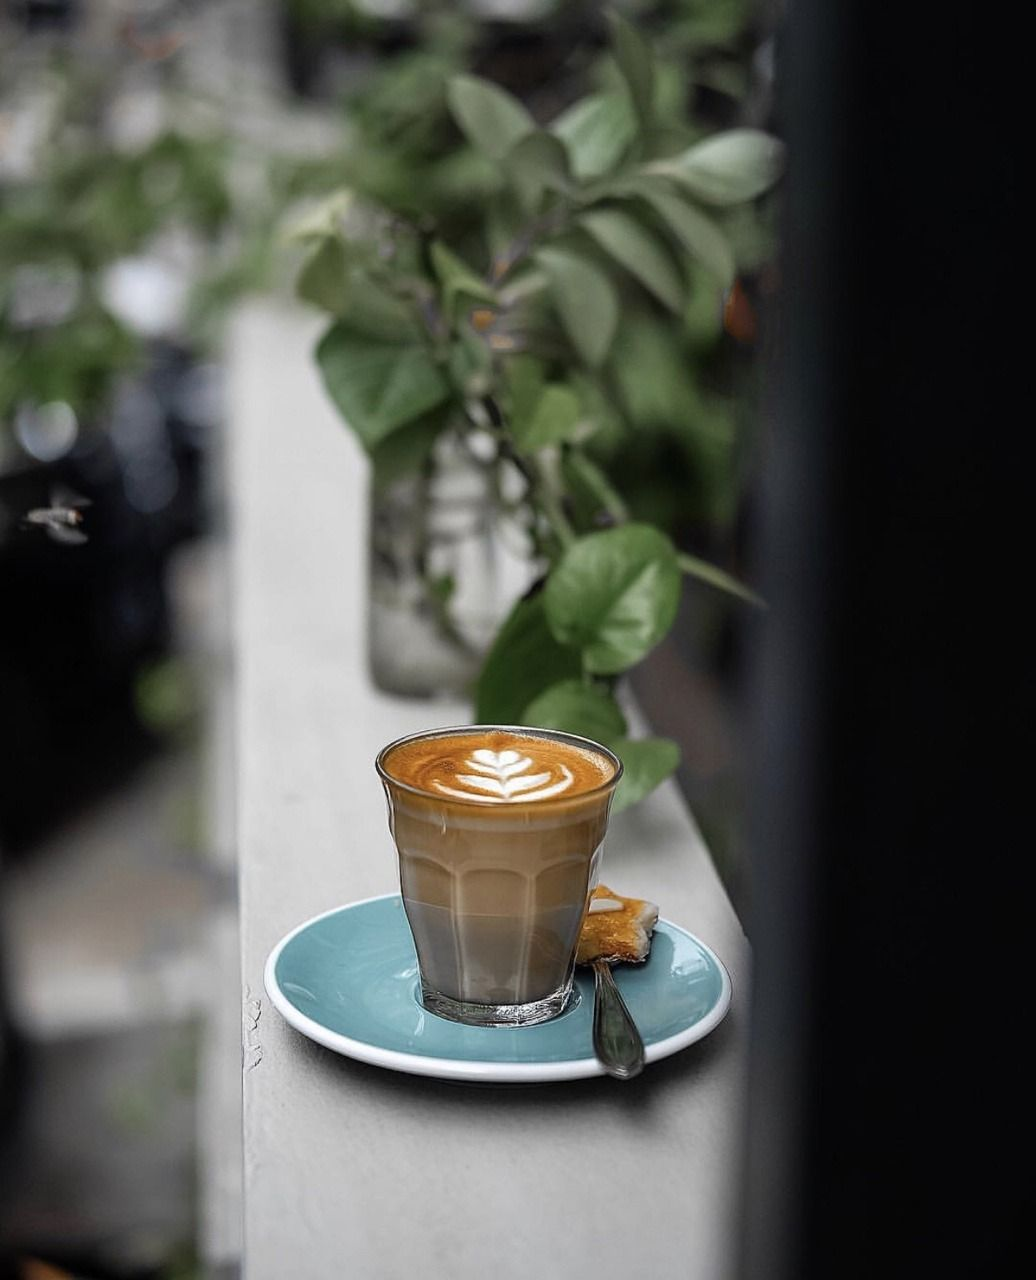 Cafe Coffee Love This Pairing Of Glass With Coloured Saucer Both Available At Hospitality Products Hospitalitydes Coffee Shot Coffee Photography Coffee Love